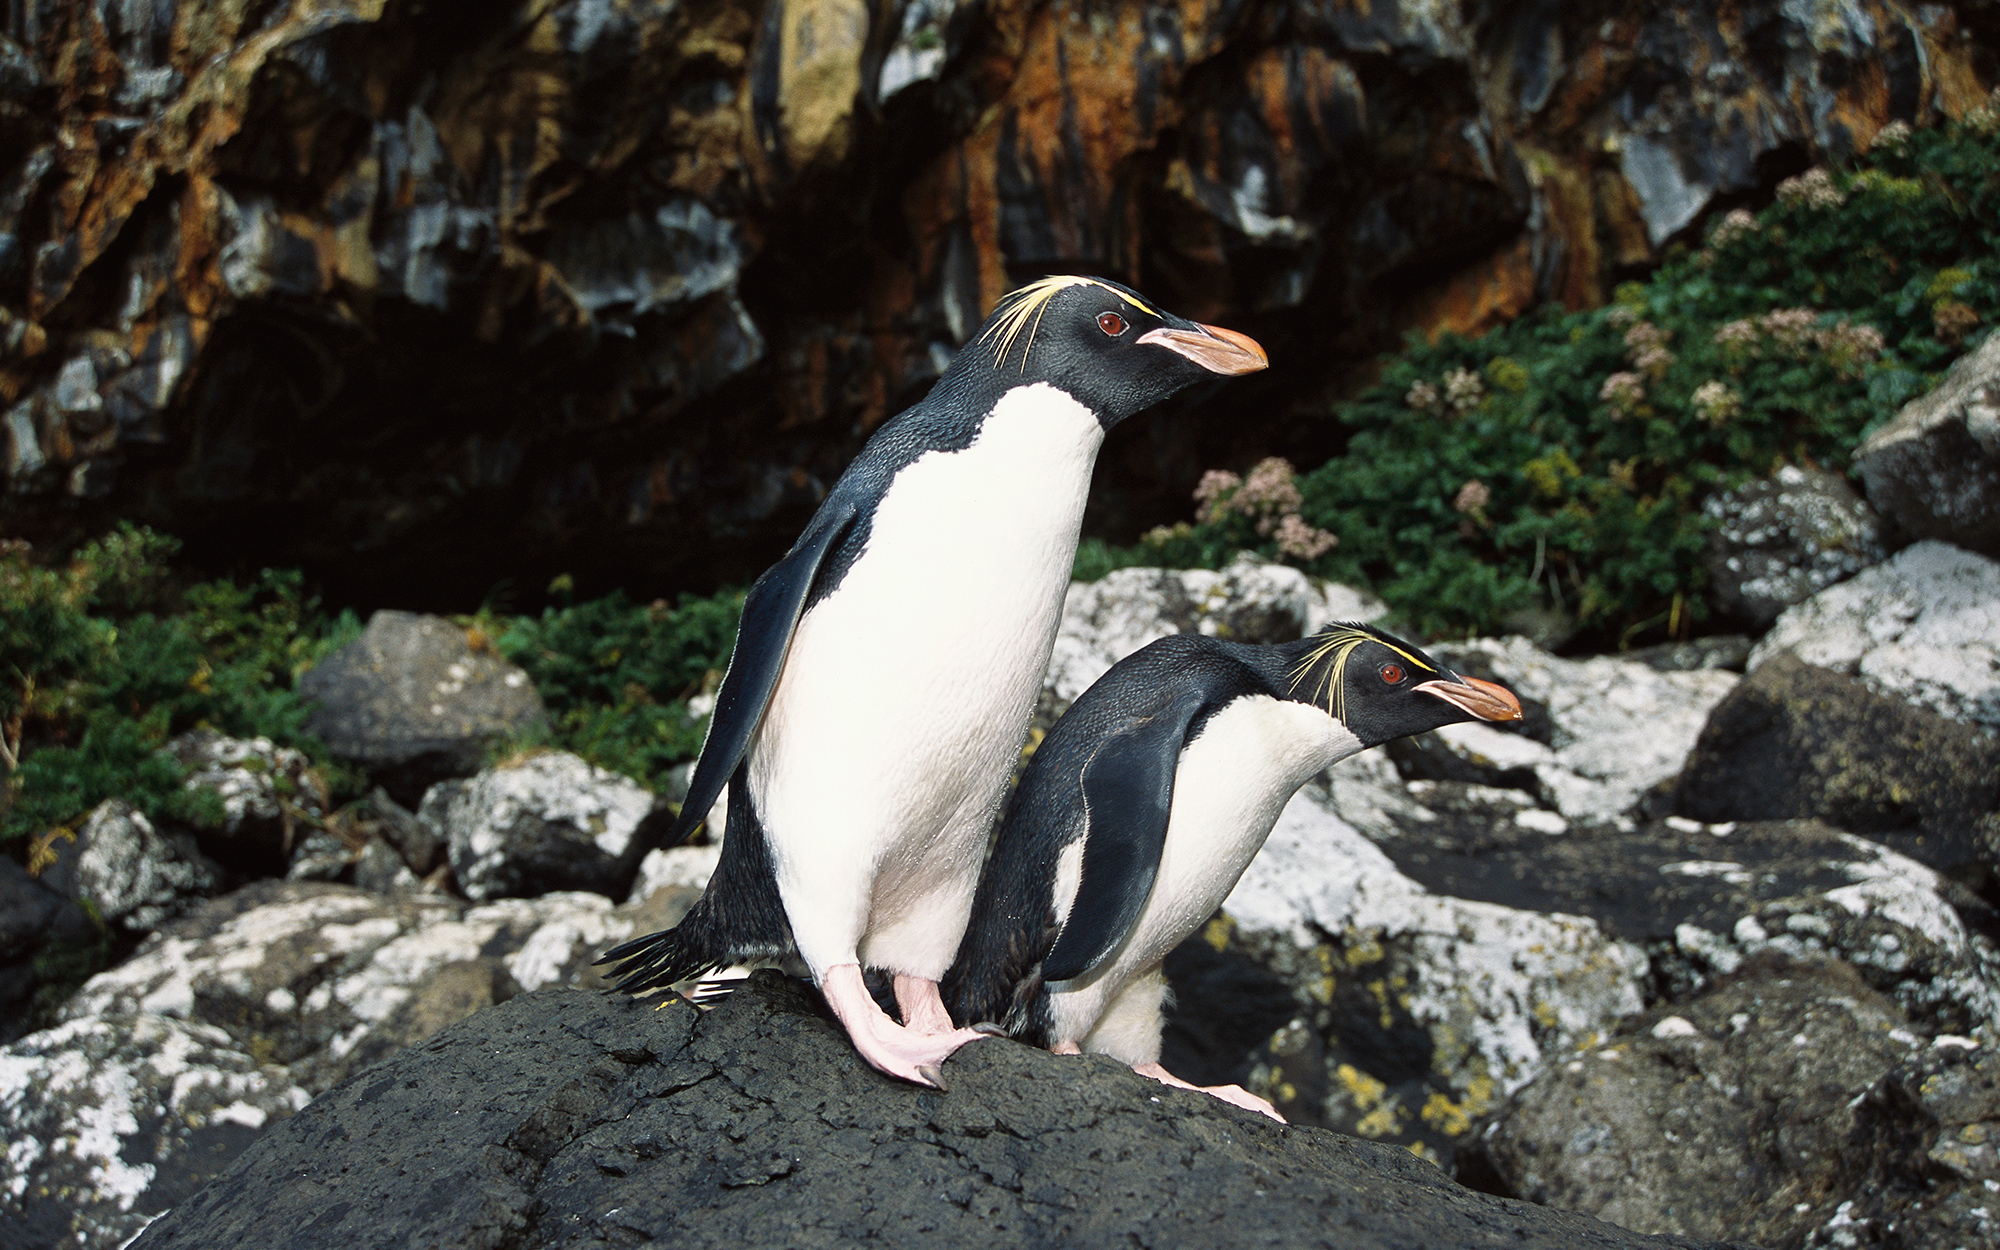 Where to See Penguins: New Zealand